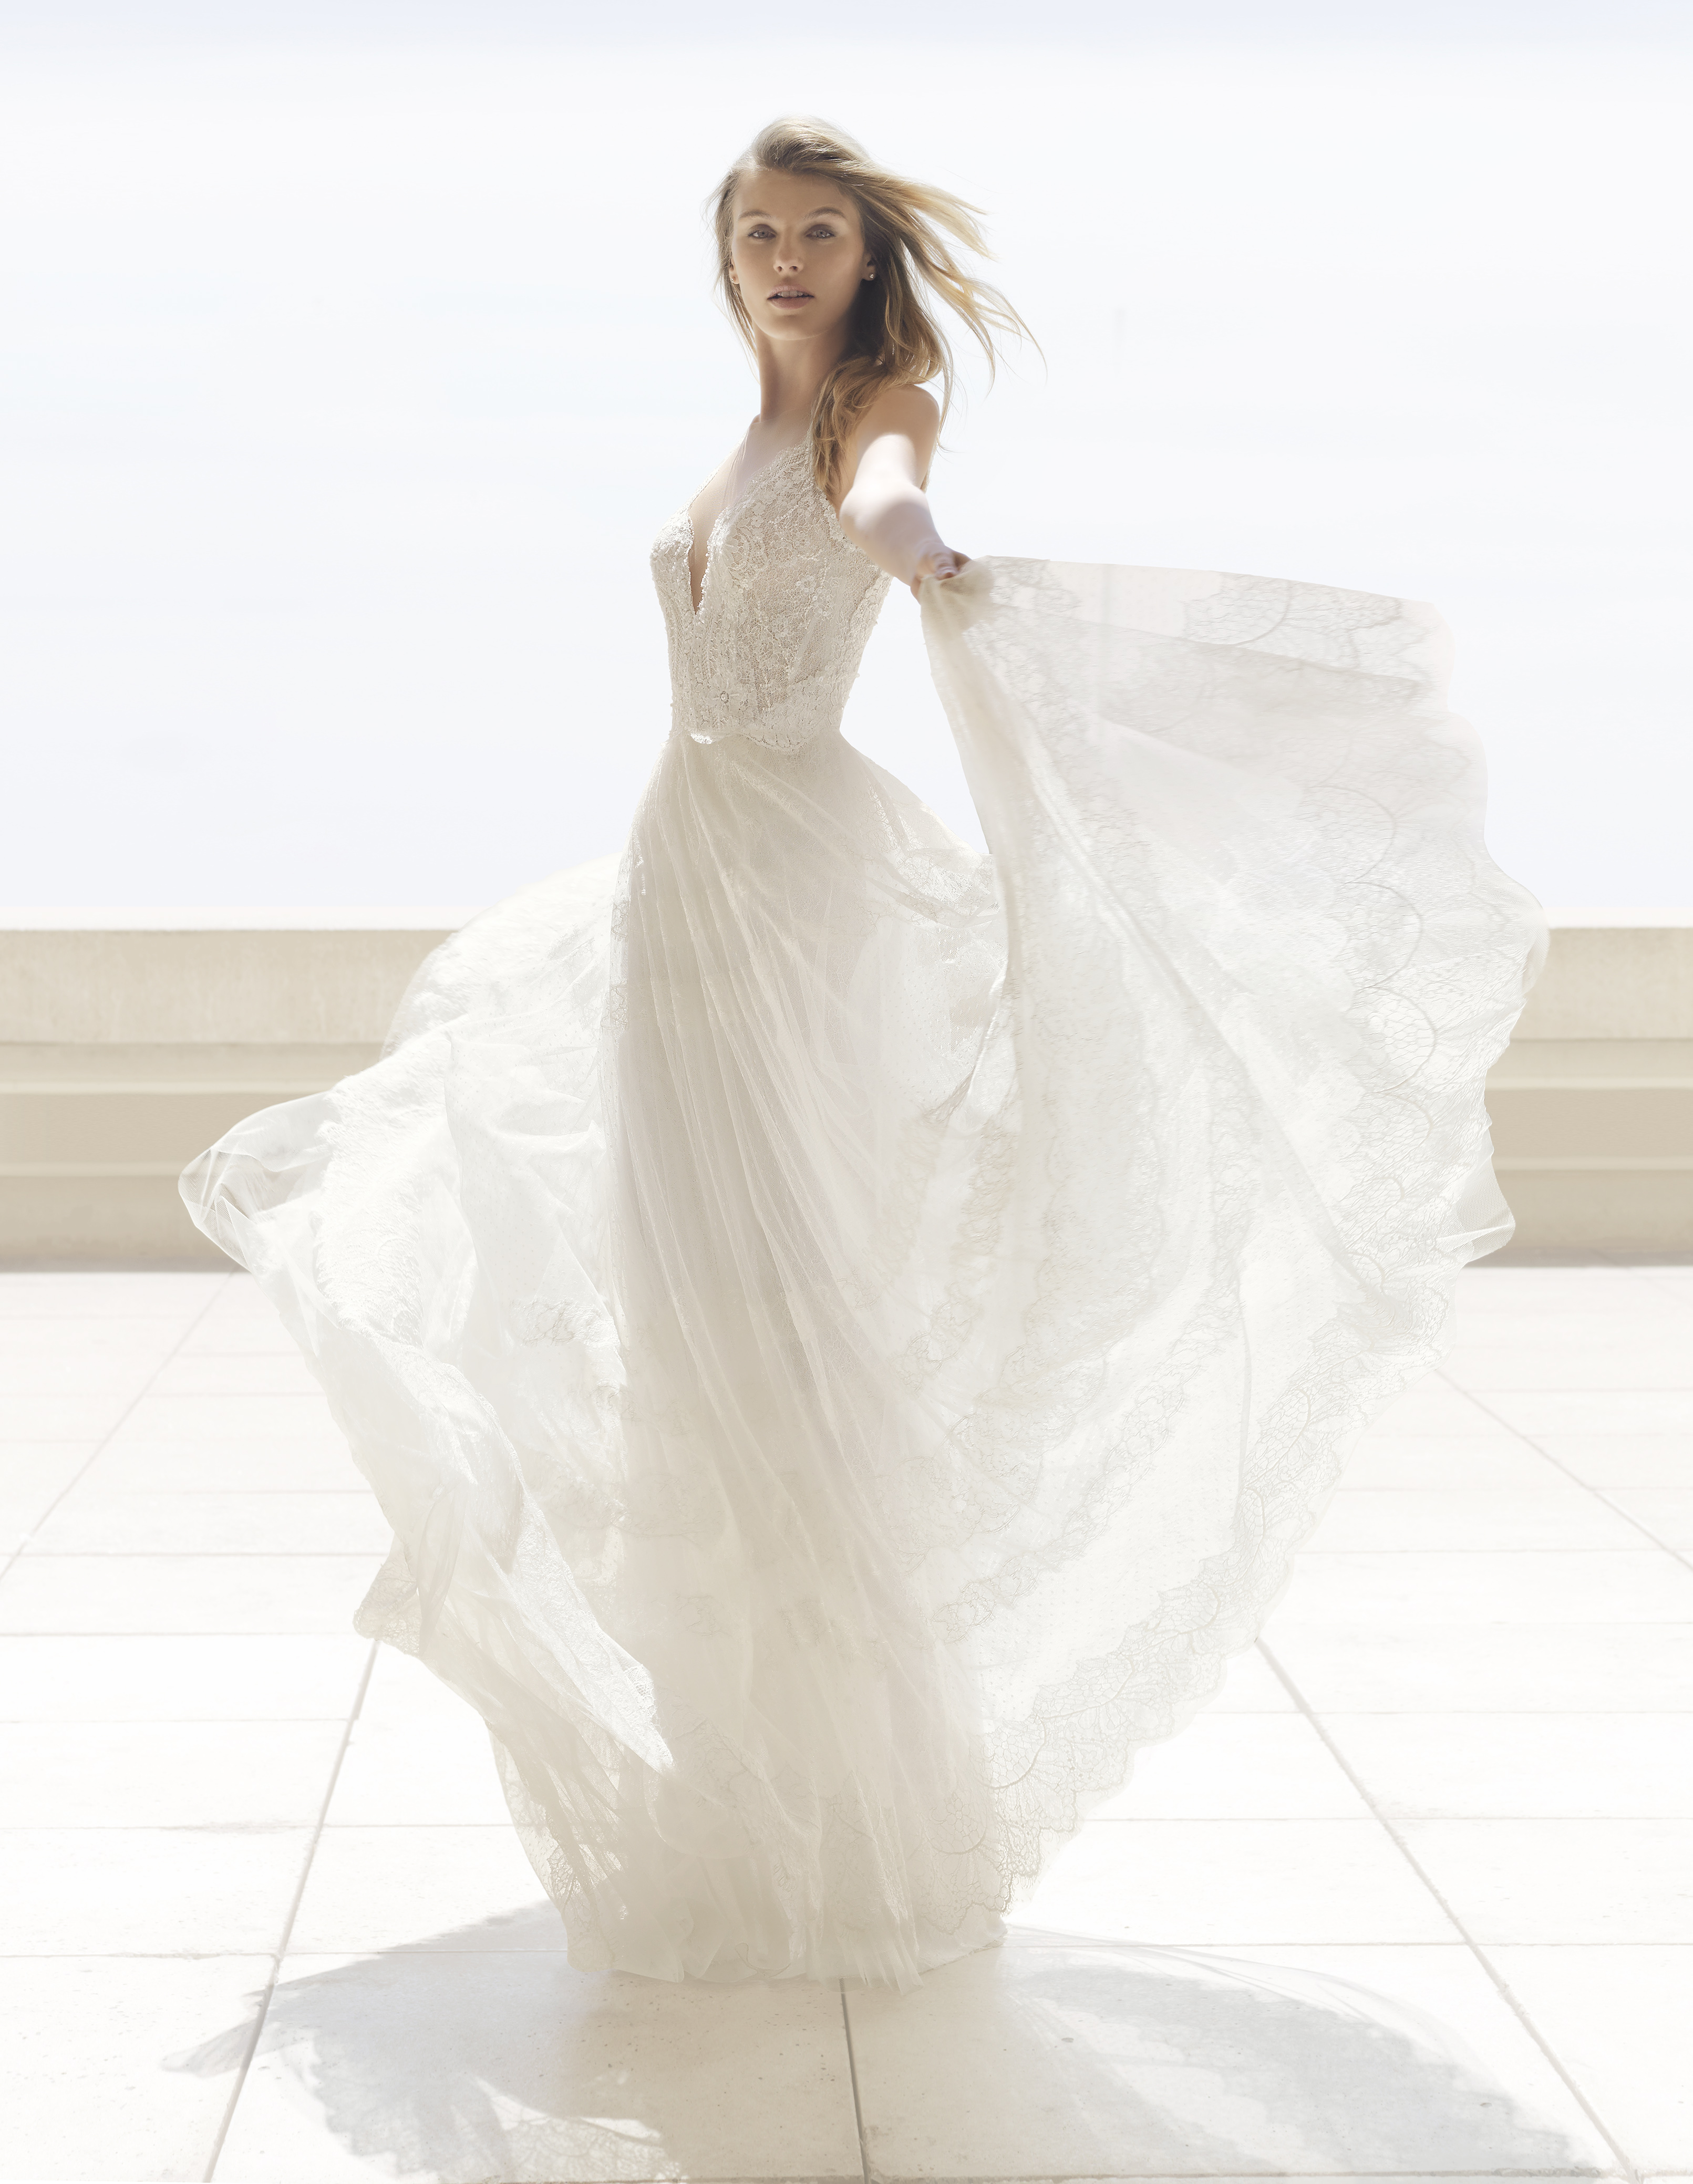 Mira Couture Rosa Clara Couture Perfume Wedding Gown Bridal Dress Chicago Boutique Front